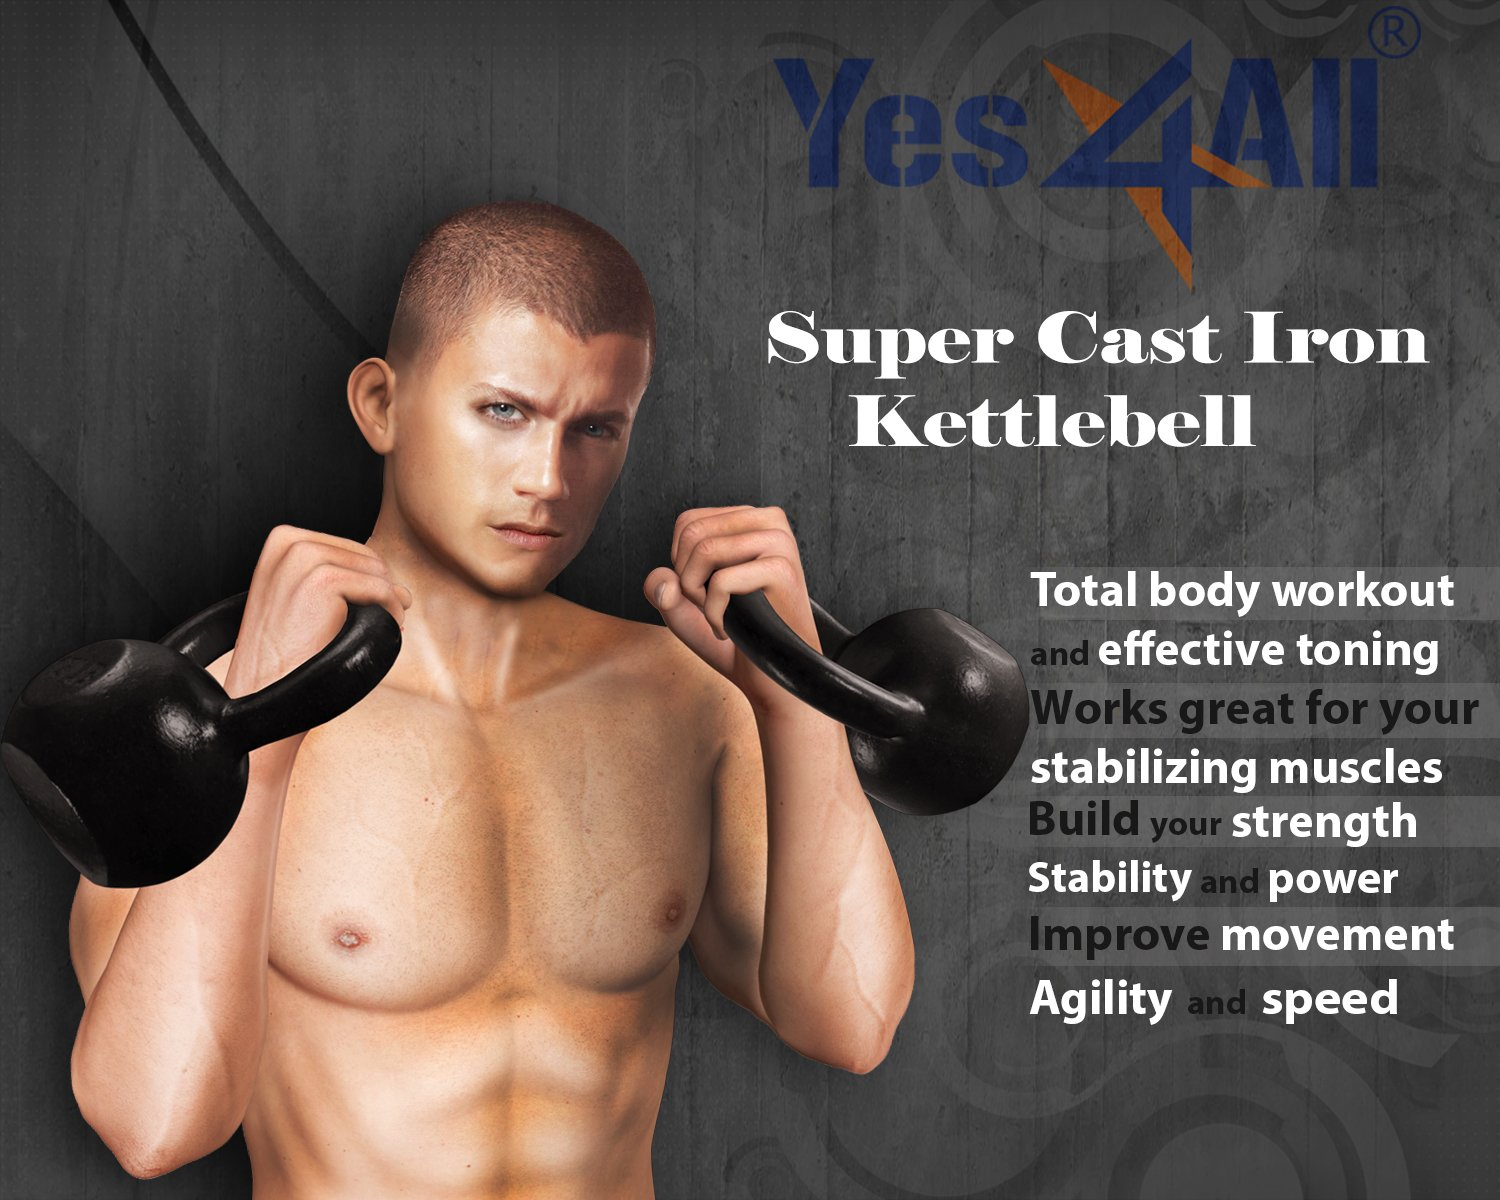 Yes4All Solid Cast Iron Kettlebell 5, 10, 15, 20, 25, 30, 35, 40, 45, 50, 55, 60 lb, Classic Black, 35 lb